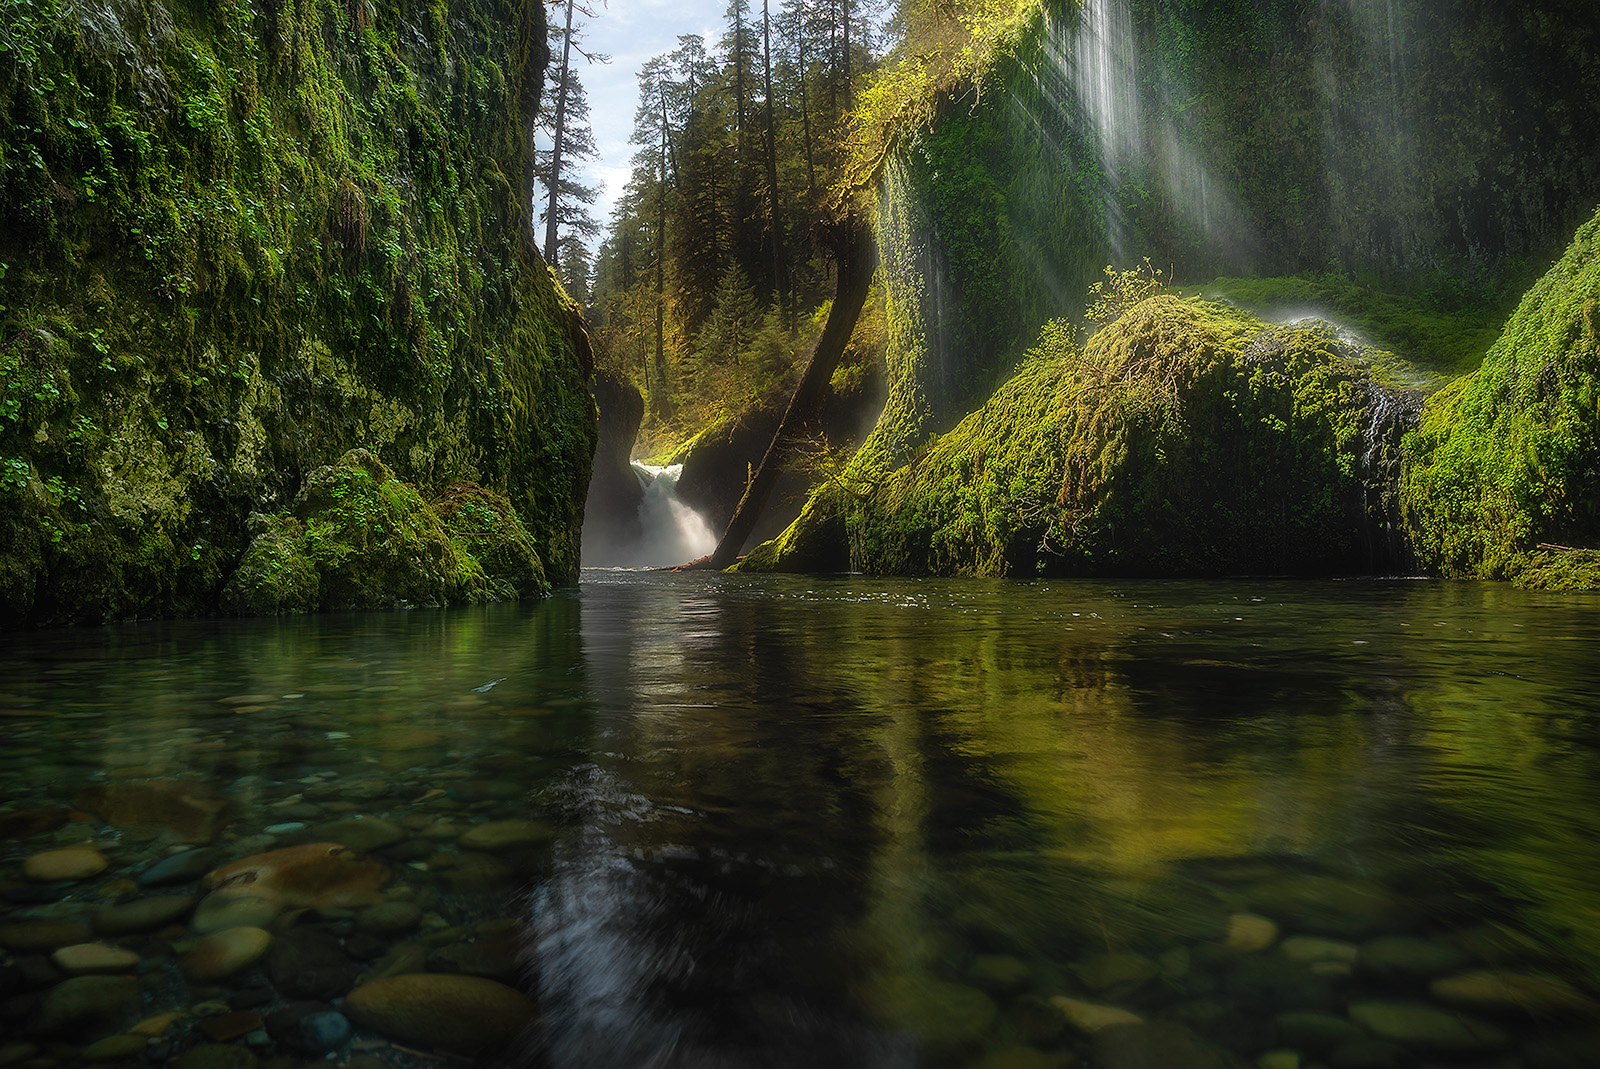 Chasing light rays at Punchbowl Falls on our Oregon Photography Workshop